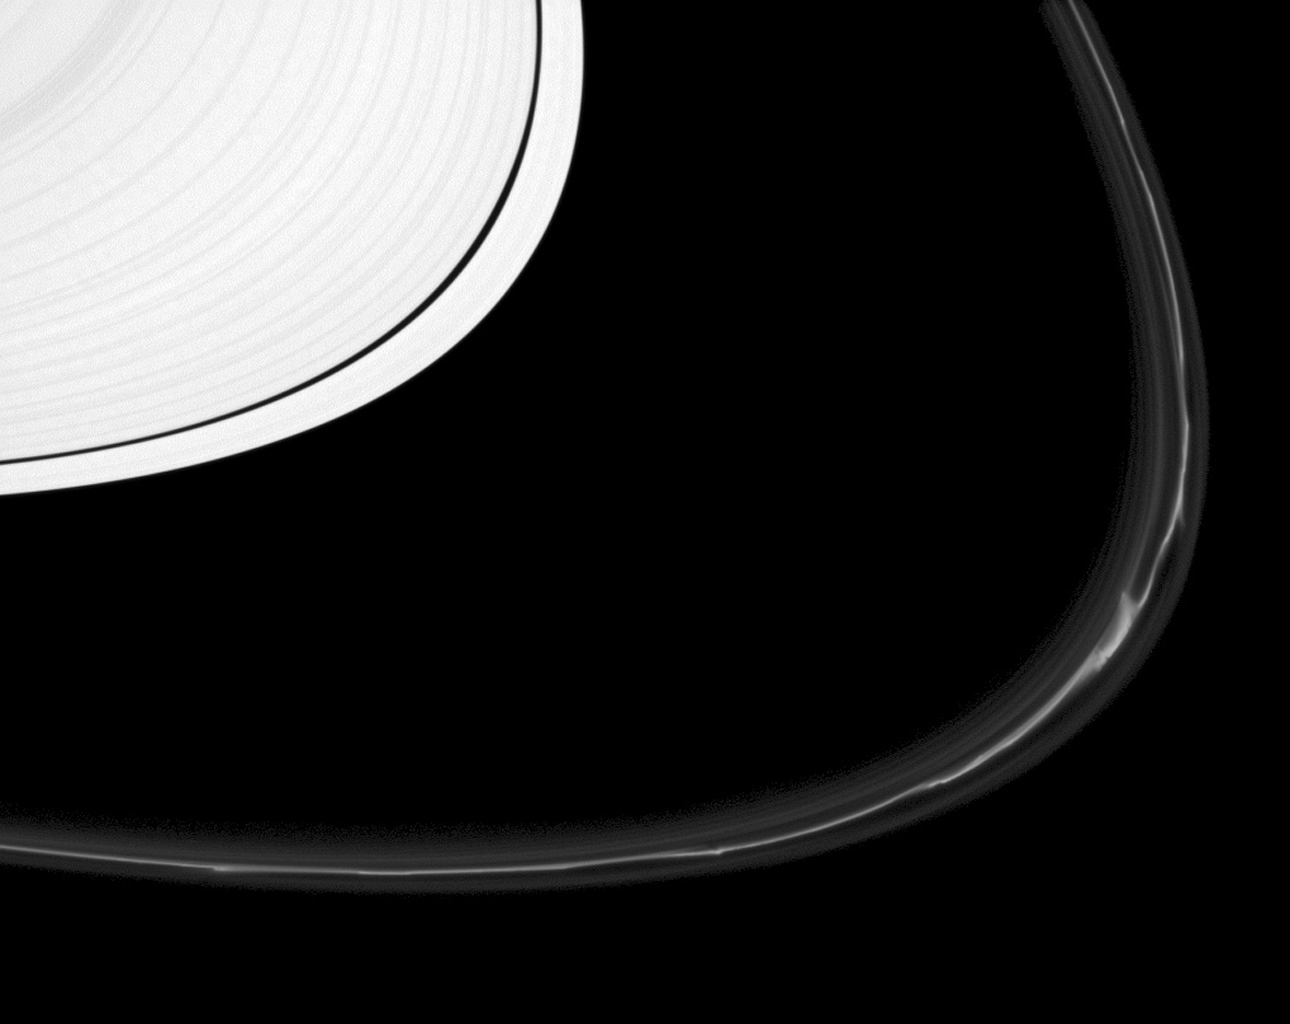 The F ring shows off a rich variety of phenomena in this image from NASA's Cassini spacecraft.